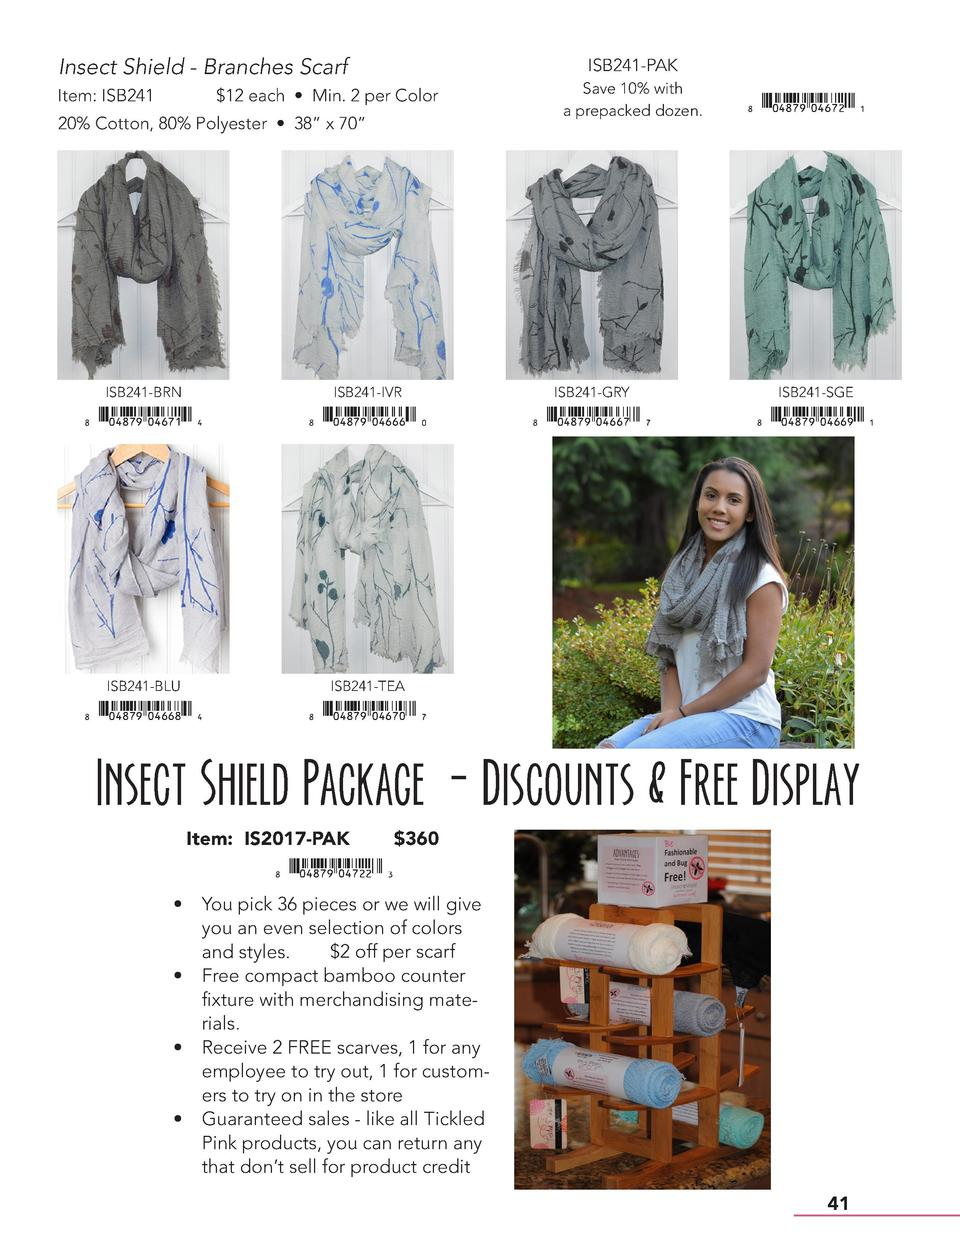 Insect Shield - Branches Scarf Item  ISB241  ISB241-PAK   12 each     Min. 2 per Color  20  Cotton, 80  Polyester     38  ...